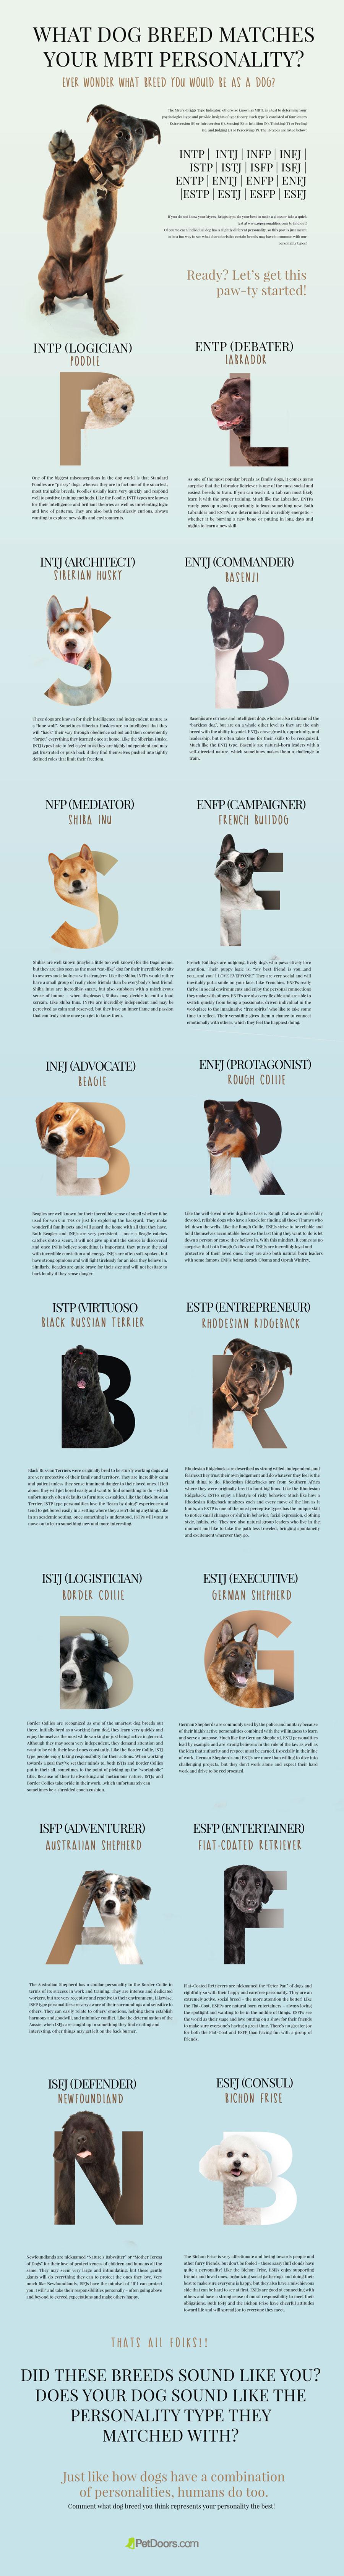 What Dog Breed Matches Your MBTI Personality